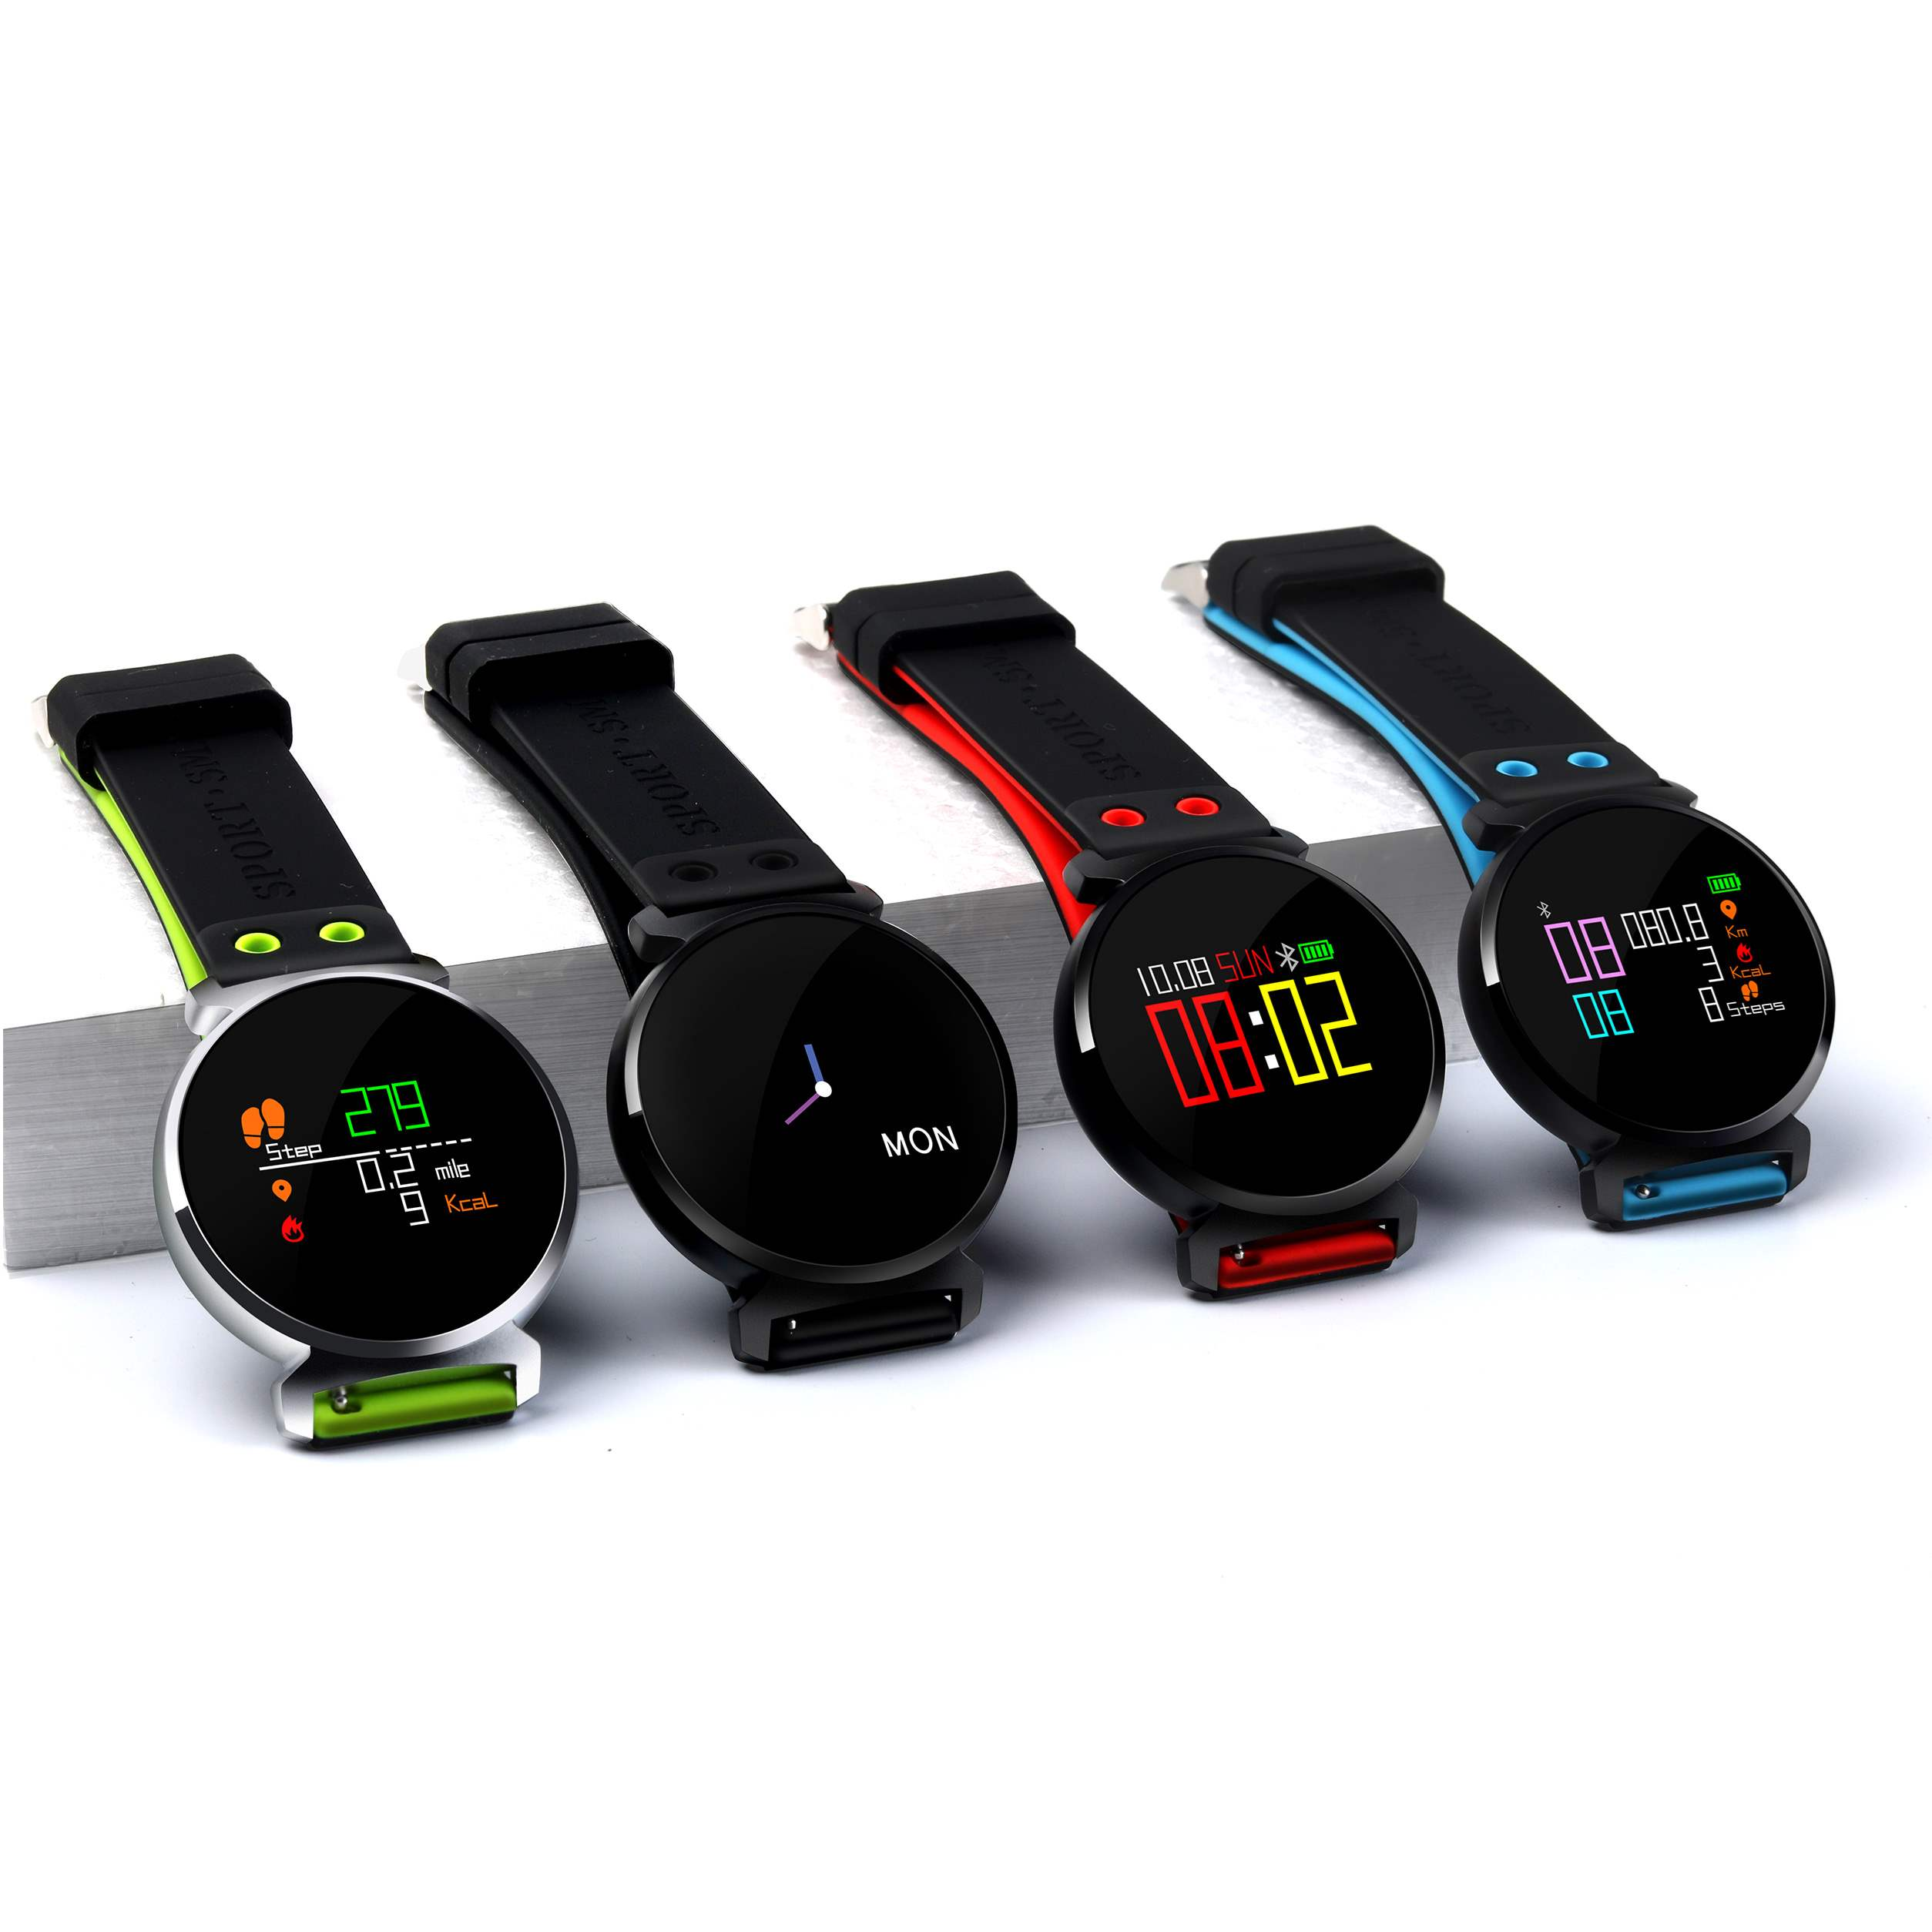 Pop Smart Watch IP68 Waterproof Fitness Tracker for Apple Android Phones